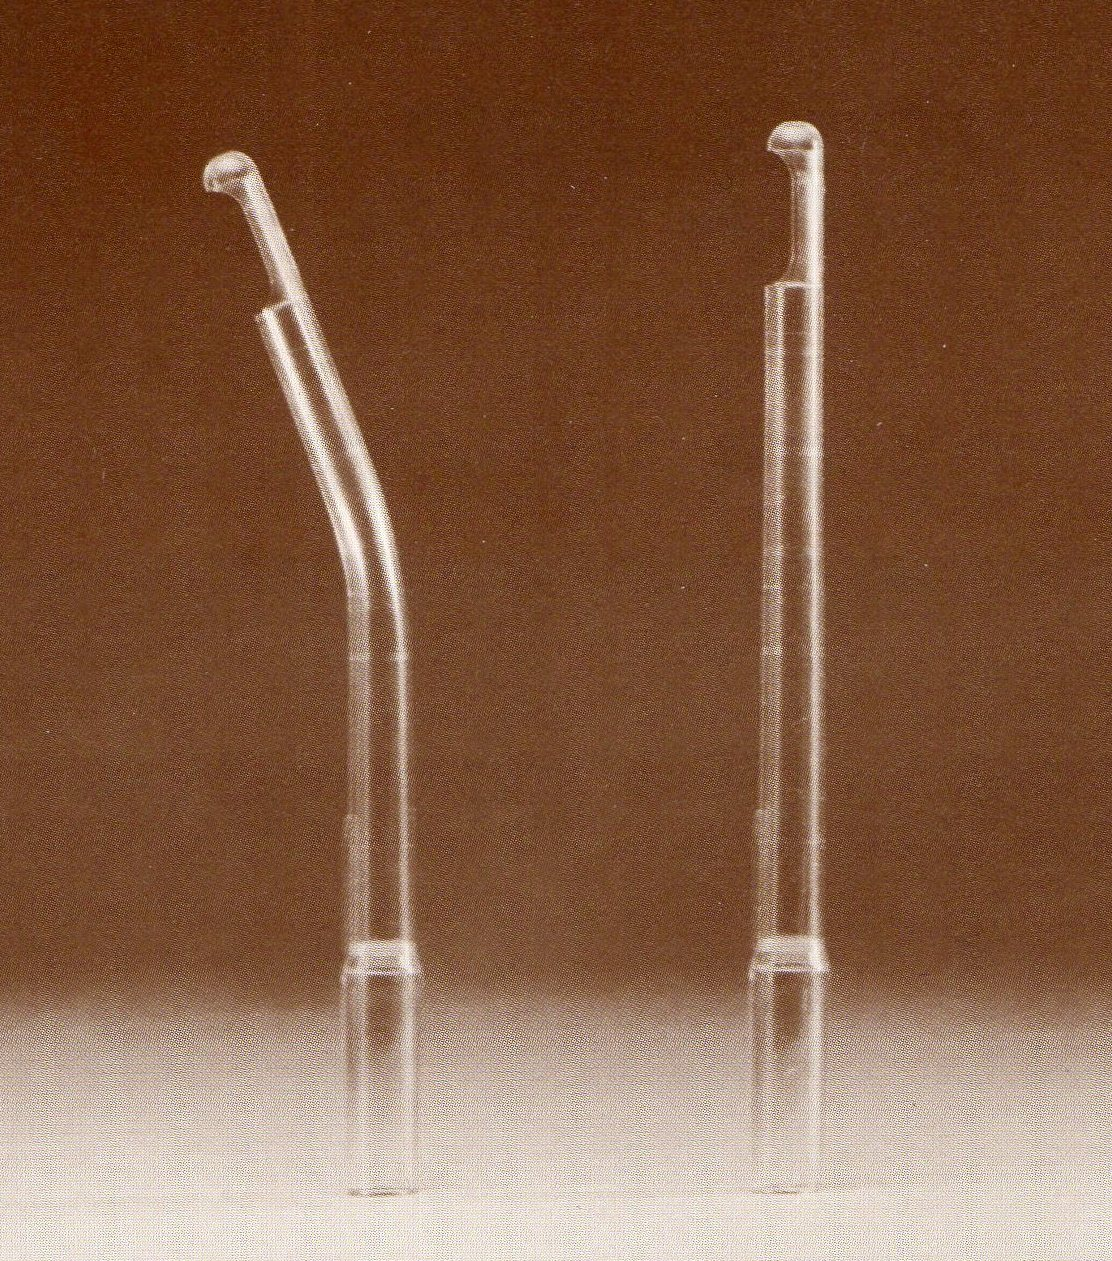 Uterine Aspirator Products